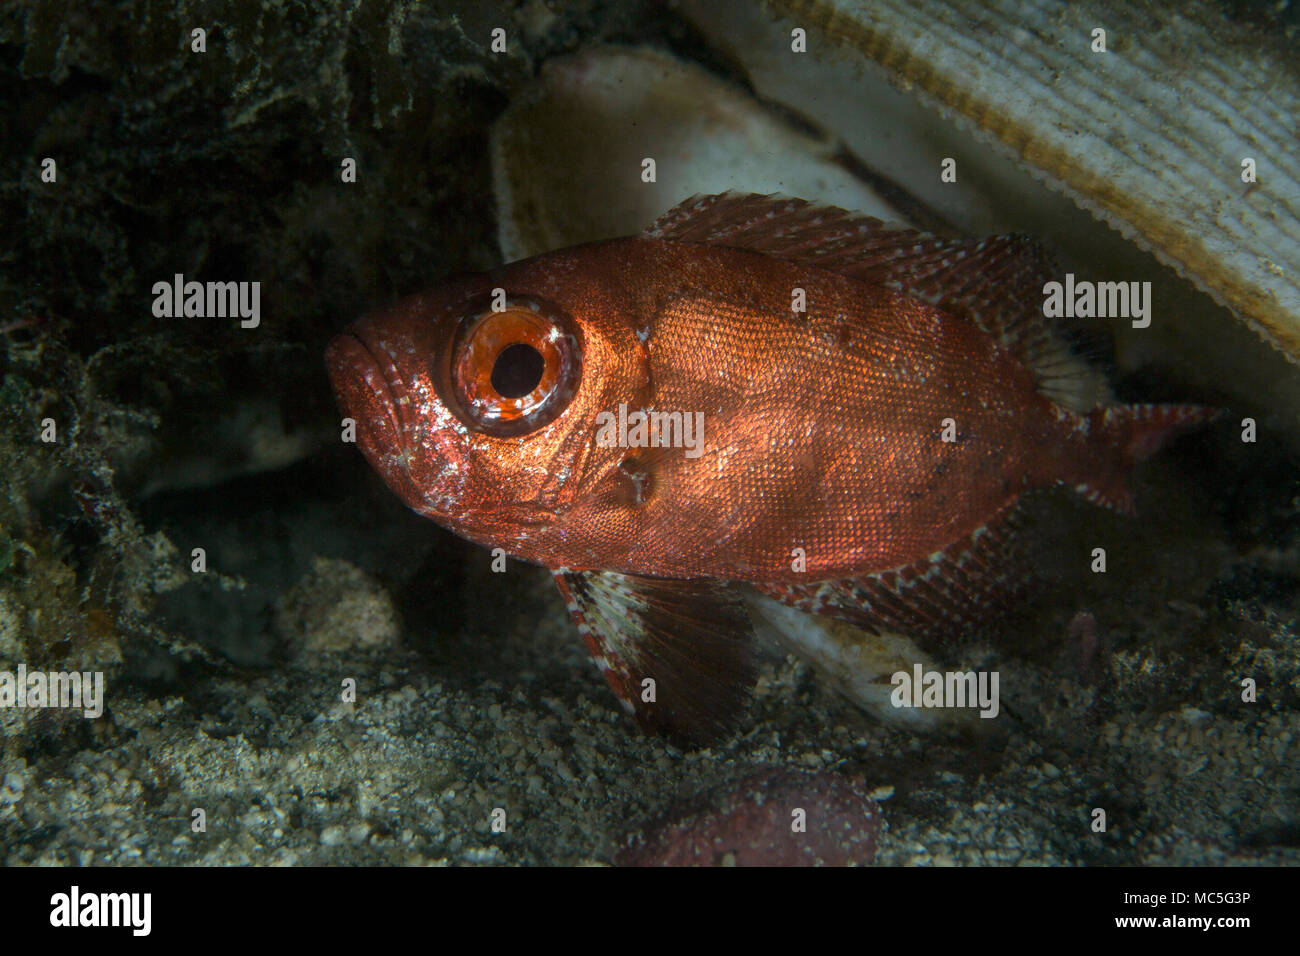 Soldier fish at the night time. Picture was taken in the Ceram sea, Raja Ampat, West Papua, Indonesia Stock Photo